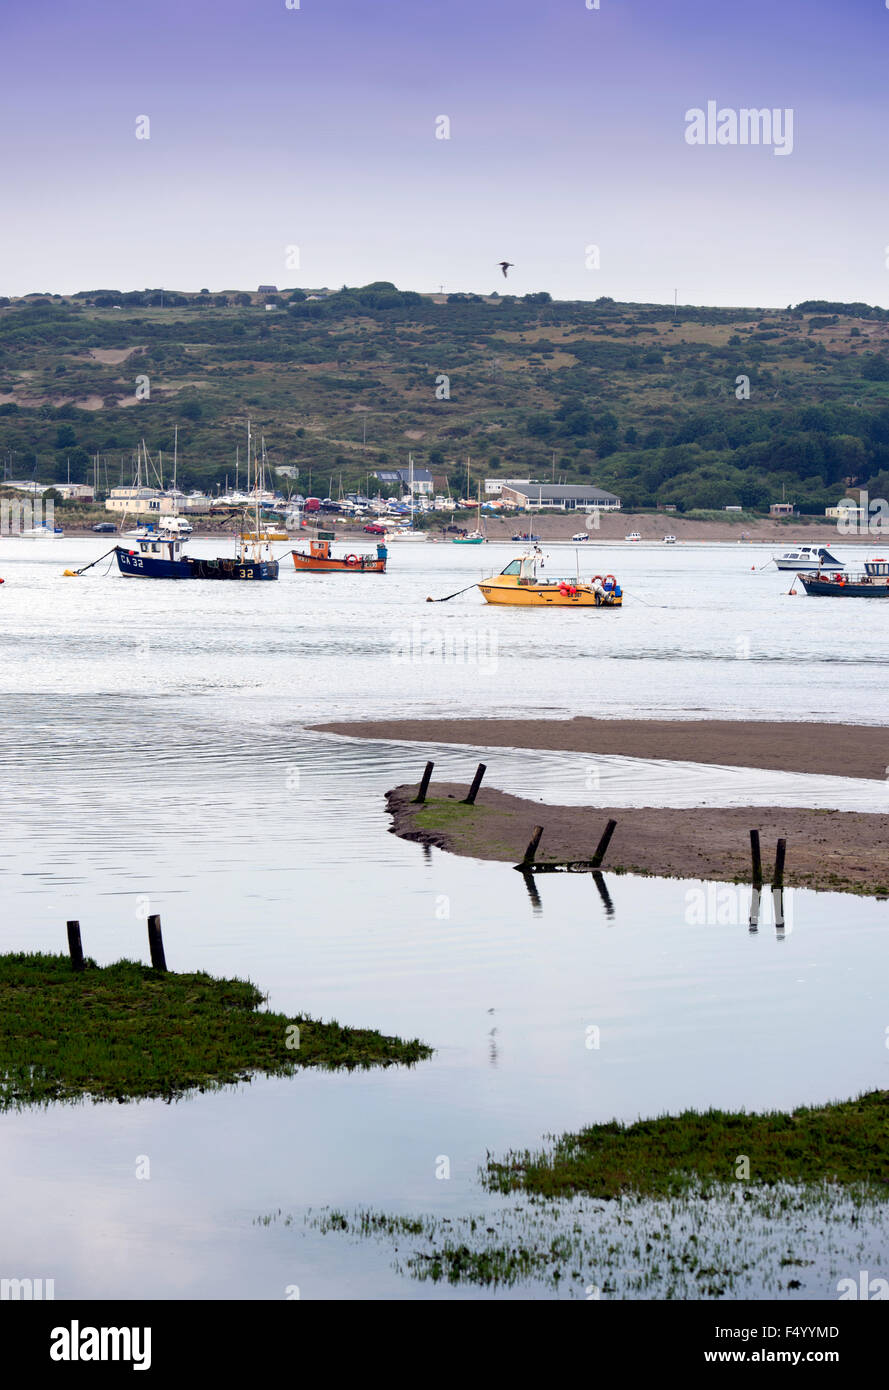 Fishing boats moored on the River Teifi estuary near St Dogmaels, Pembrokeshire, Wales UK Stock Photo